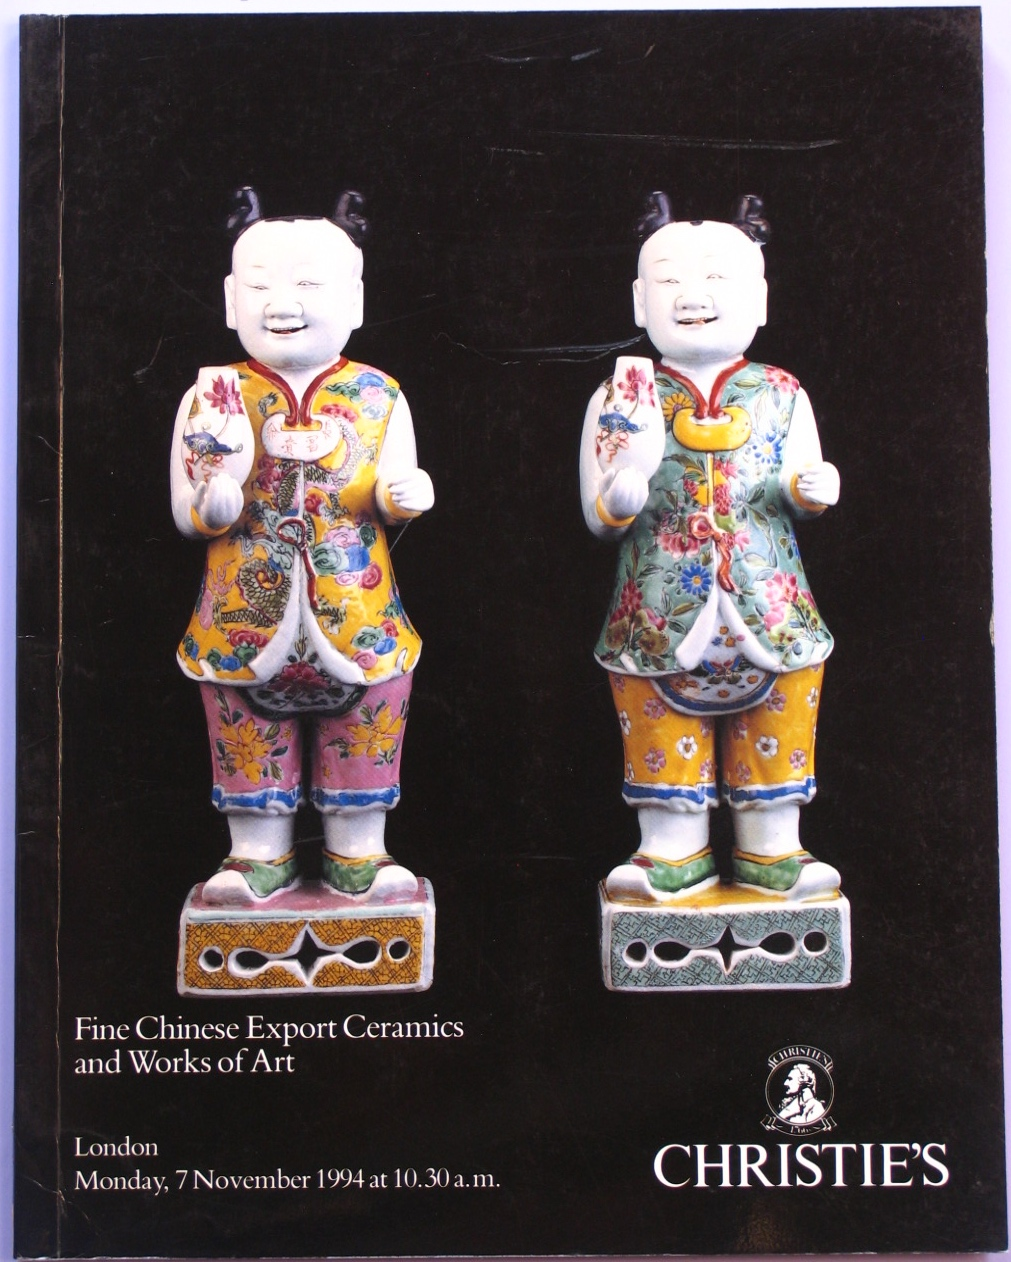 CL19941107: Bookshop: [1994] Christie's Fine Chinese Export Ceramics and Works of Art